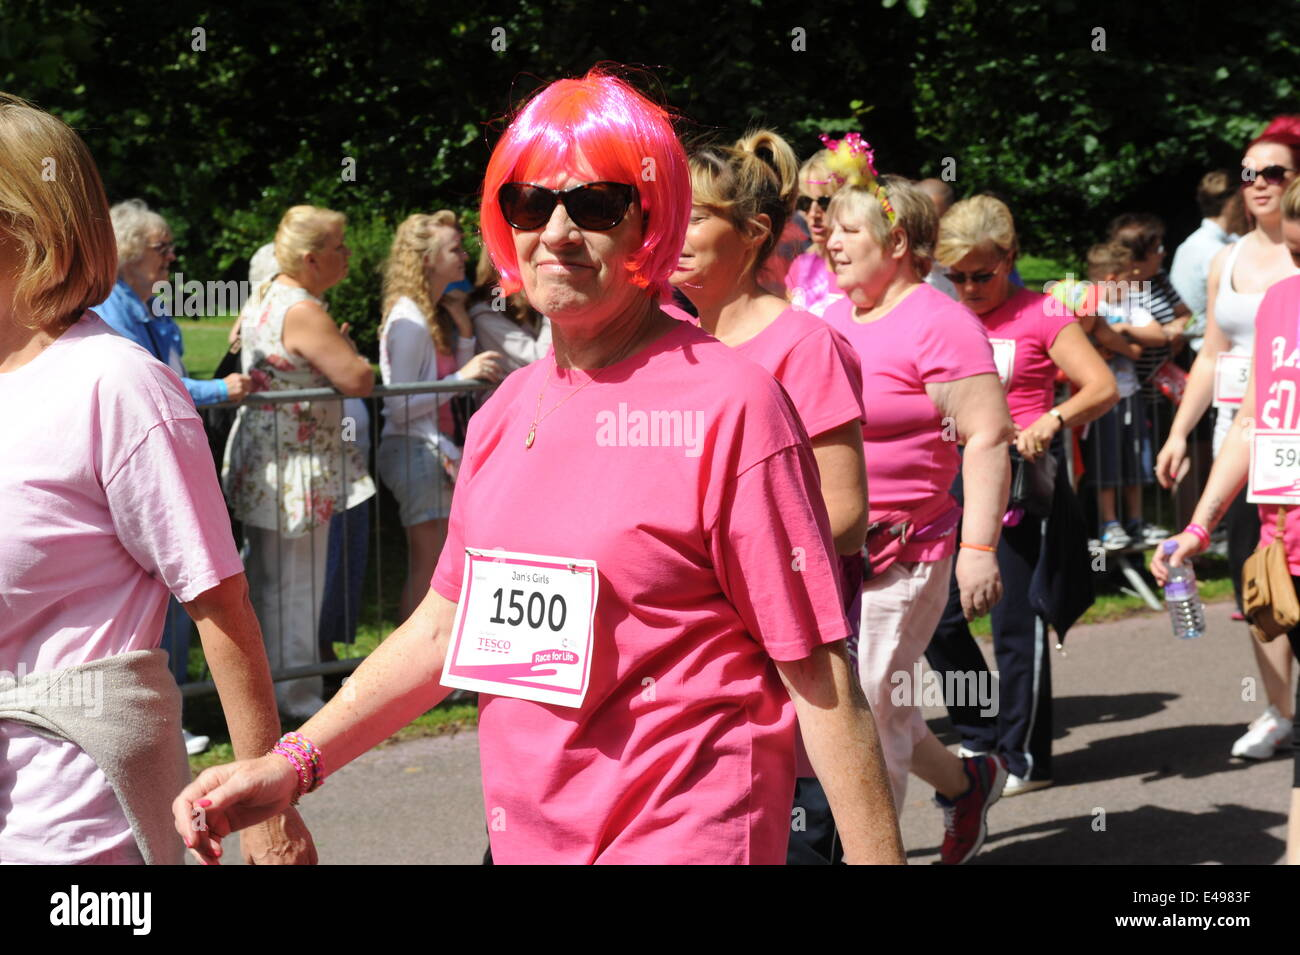 Liverpool, UK. Sunday 6th July 2014. Another woman in a pink wig. Cancer Research UK's Race for Life is a series Stock Photo